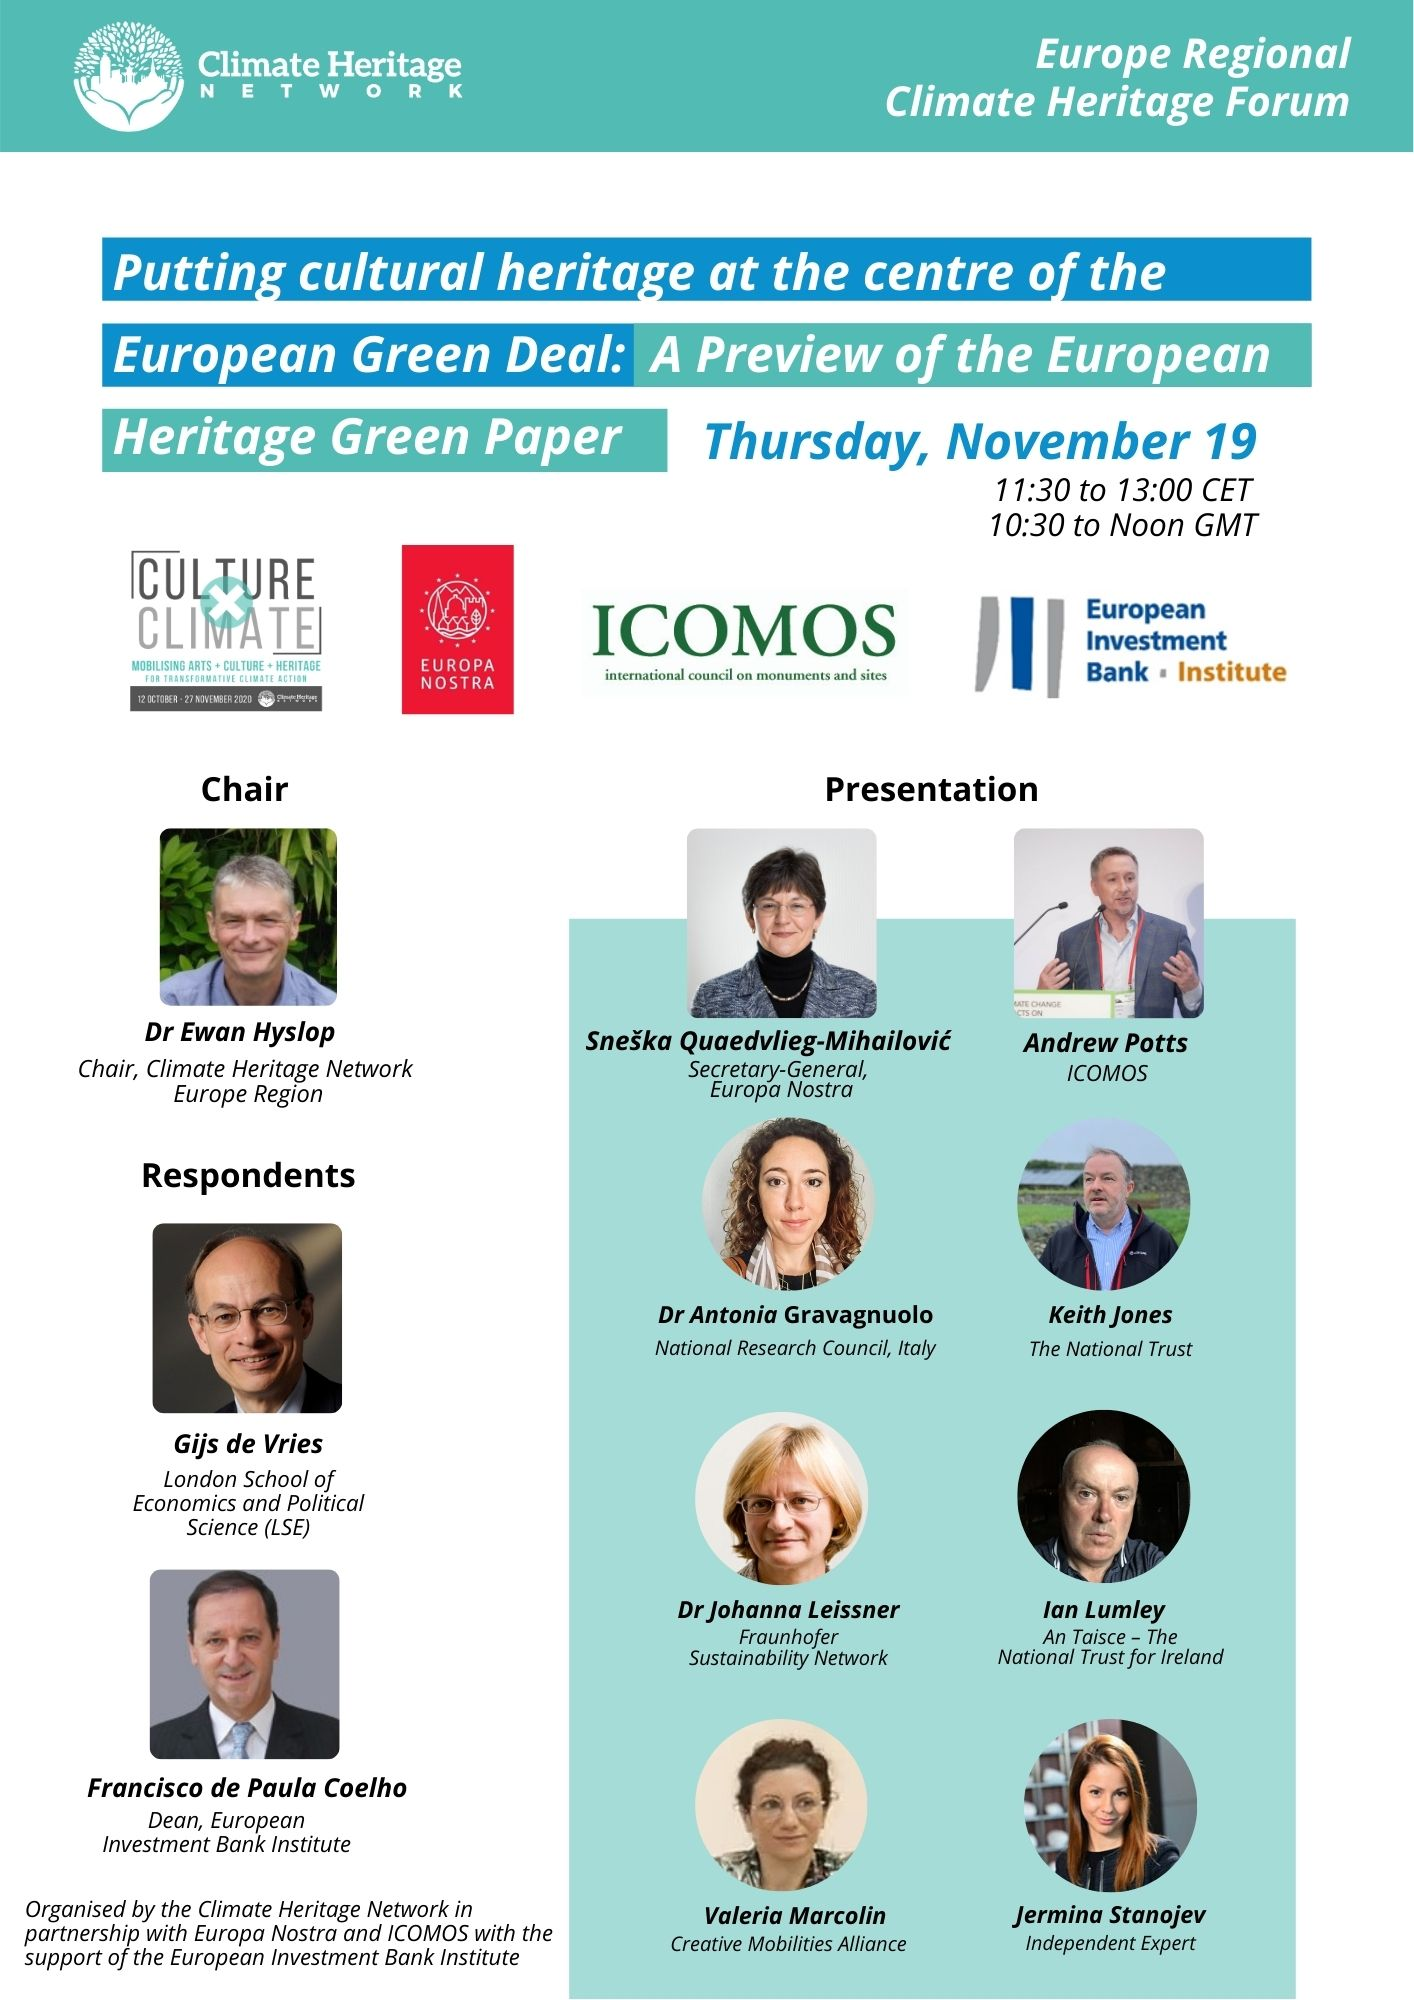 European Regional Climate Heritage Forum – Putting Cultural Heritage at the Centre of the European Green Deal: A Preview of the European Heritage Green Paper